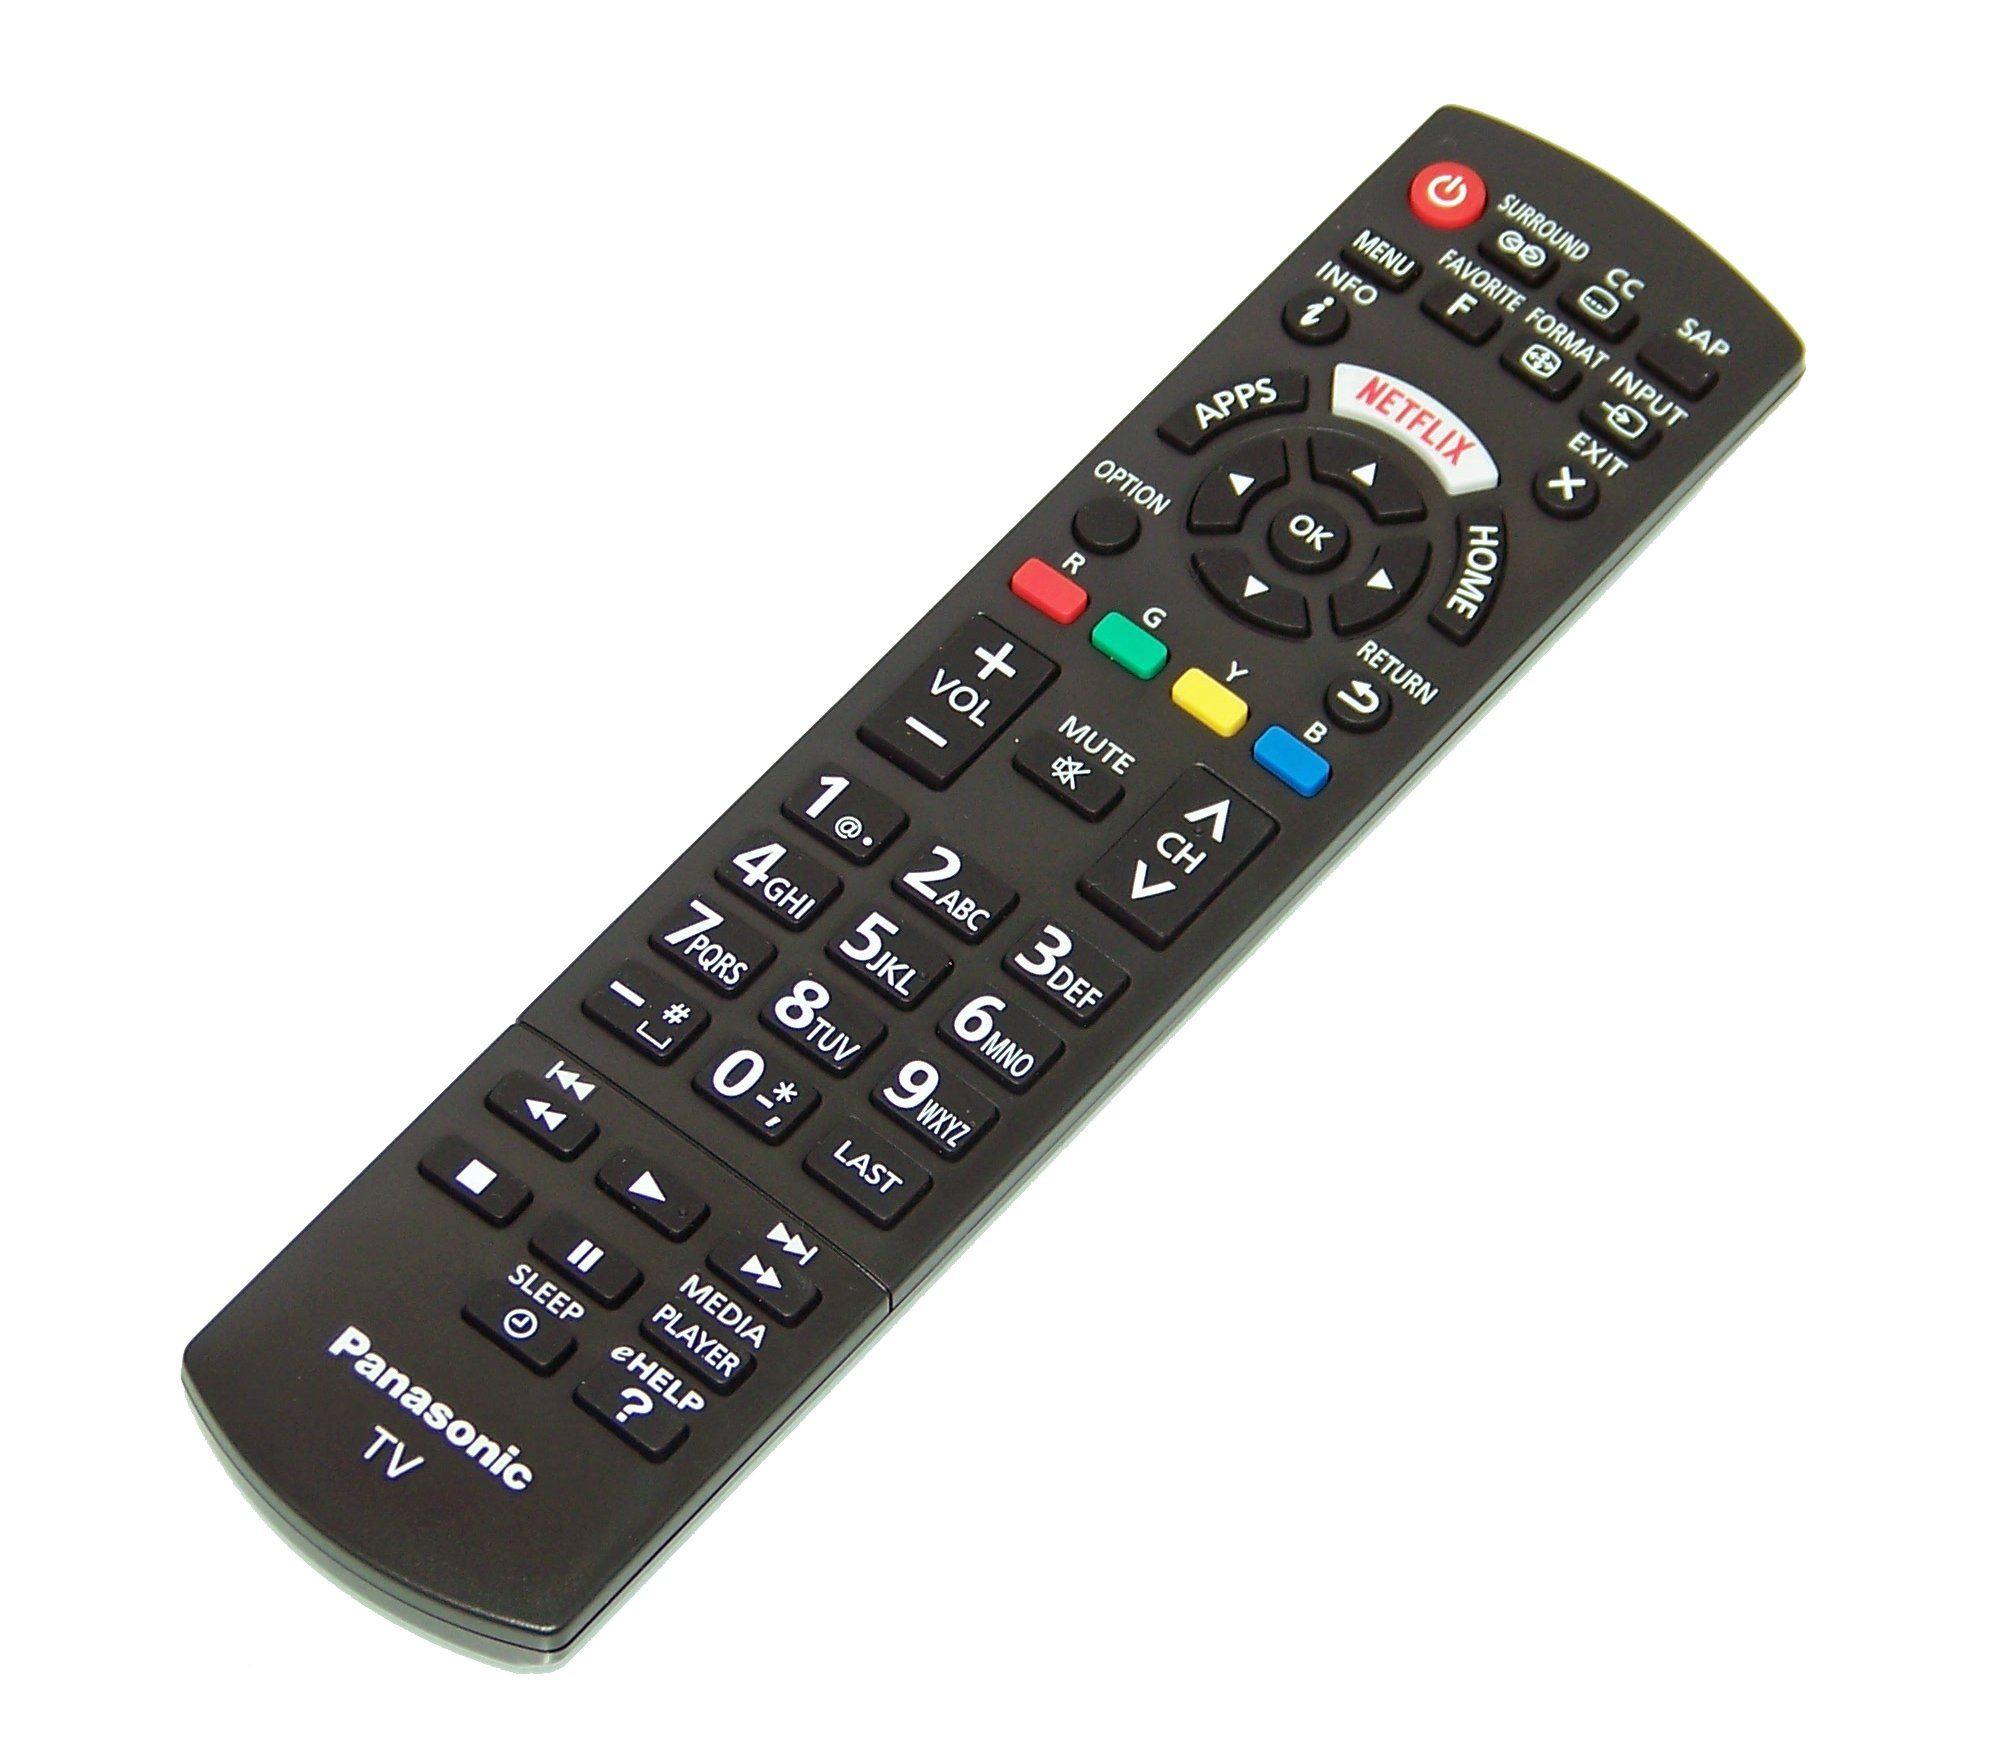 OEM Panasonic Remote Control Specifically for TCL50E60, TC-L50E60, TCL58E60, TC-L58E60, TCL65E60, TC-L65E60